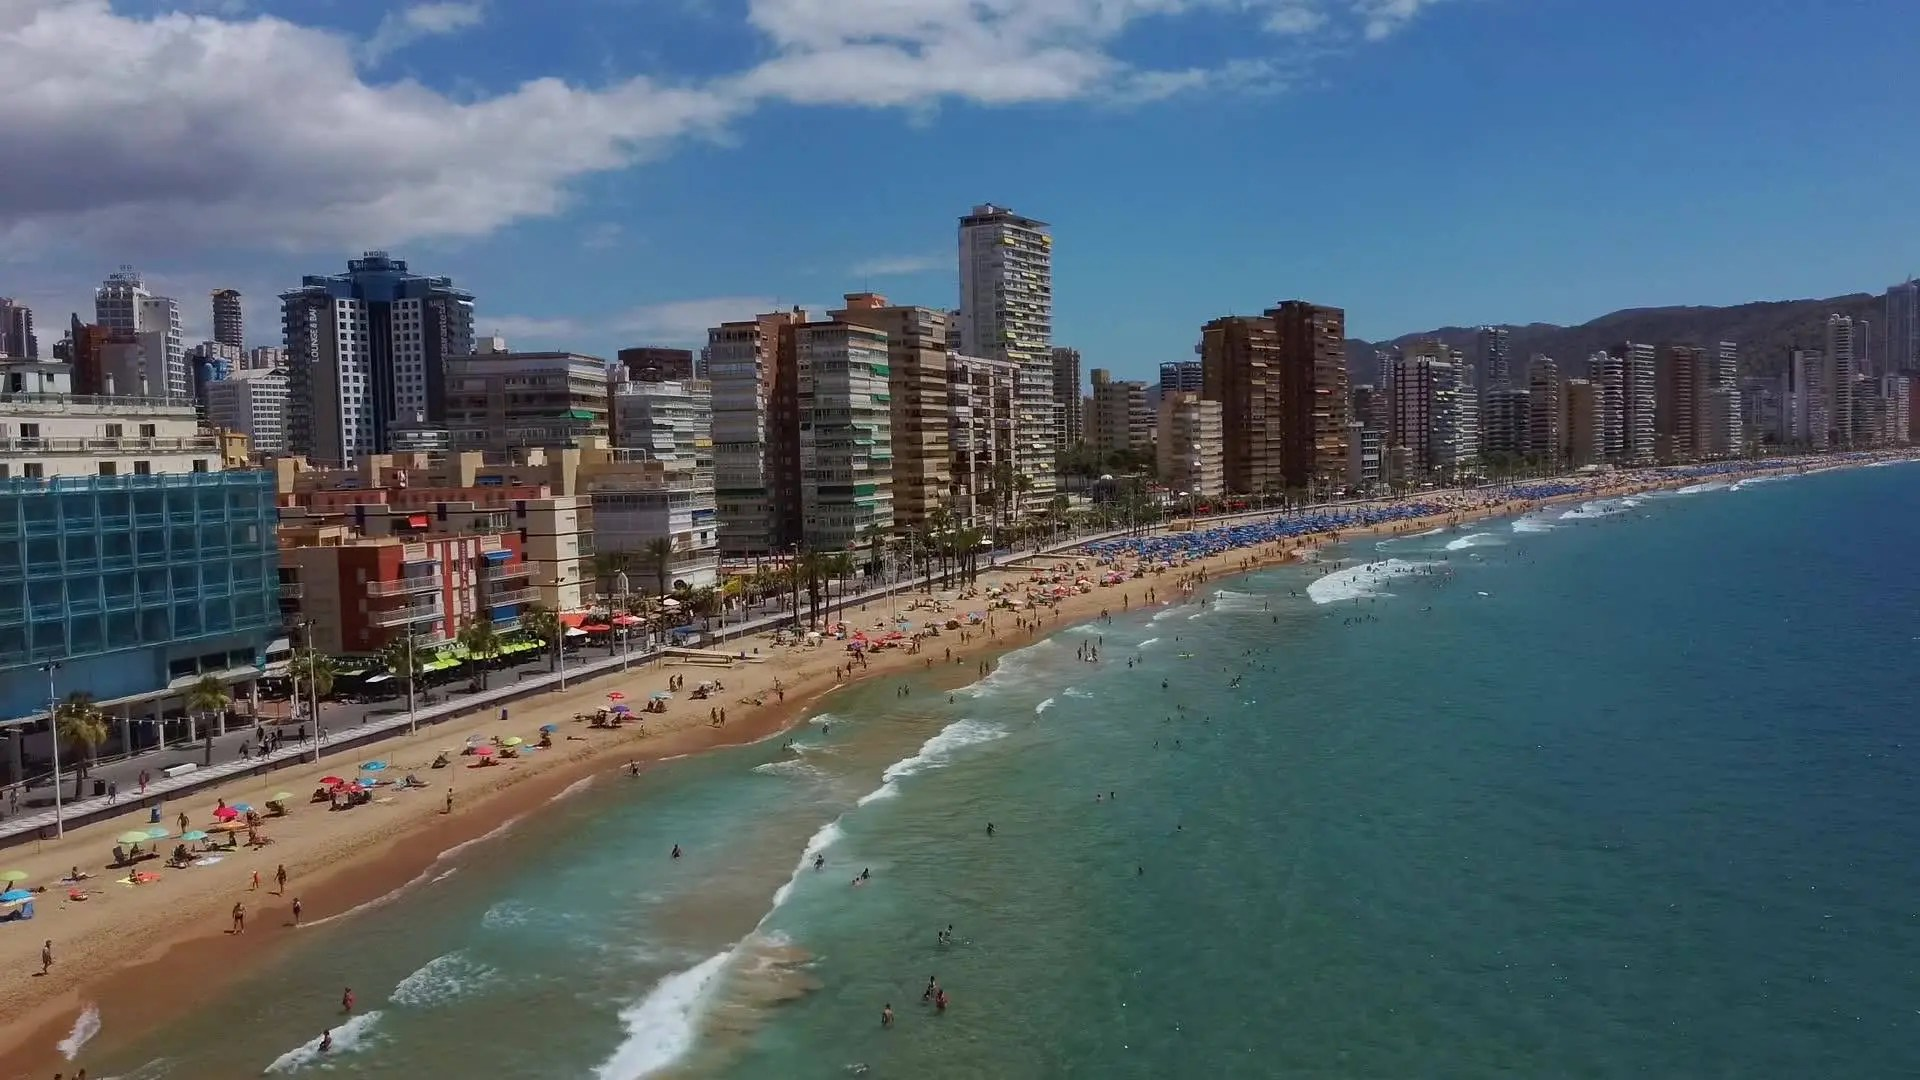 Benidorm wants to create its own 'safe travel' corridor for UK visitors to Spain's Costa Blanca – Espana news